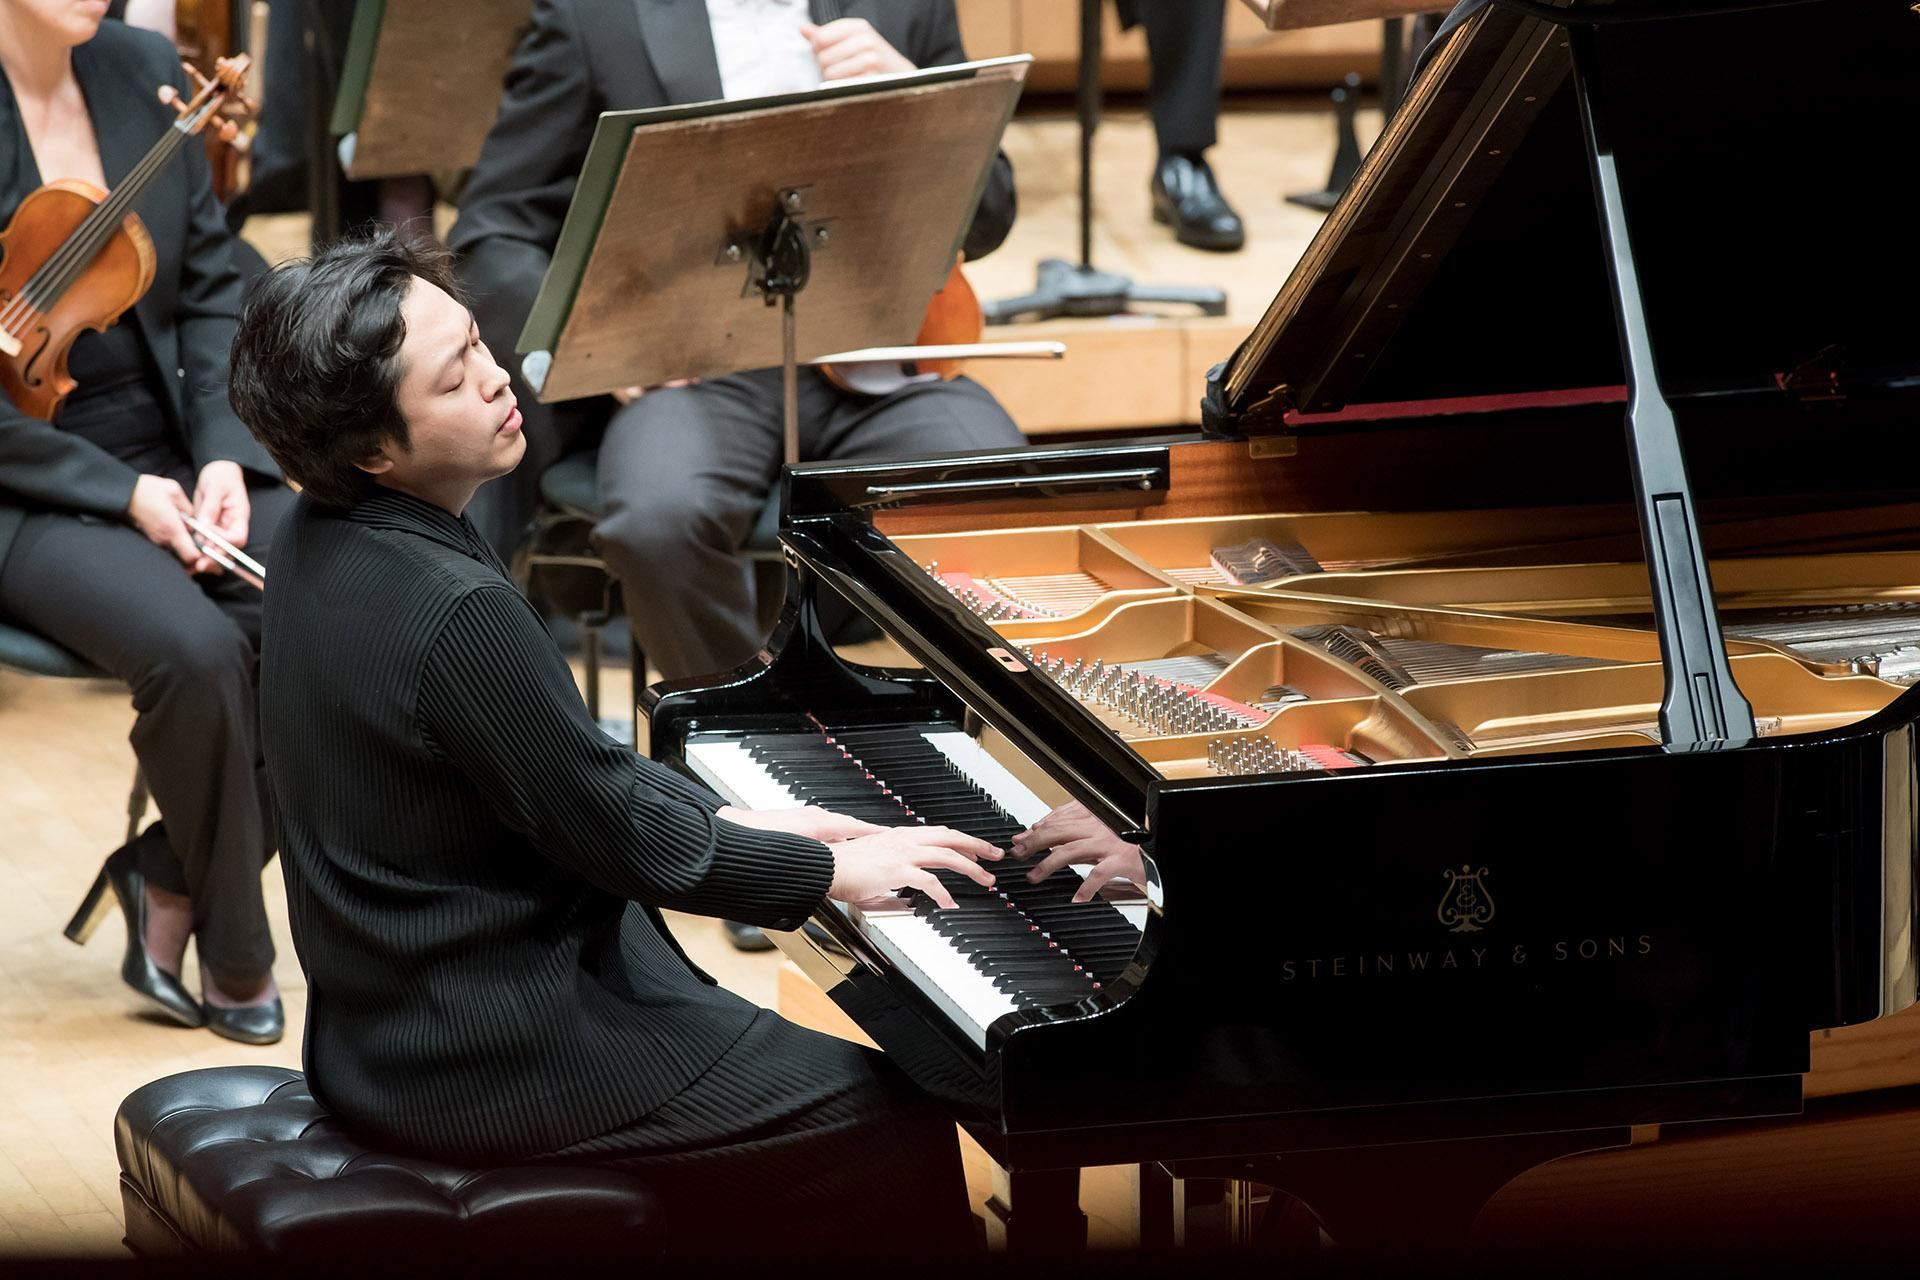 Pianist Sunwook Kim plays Mendelssohn's Piano Concerto No. 1 in his CSO debut at Symphony Center on Oct. 10, 2019. (Photo by Anne Ryan)